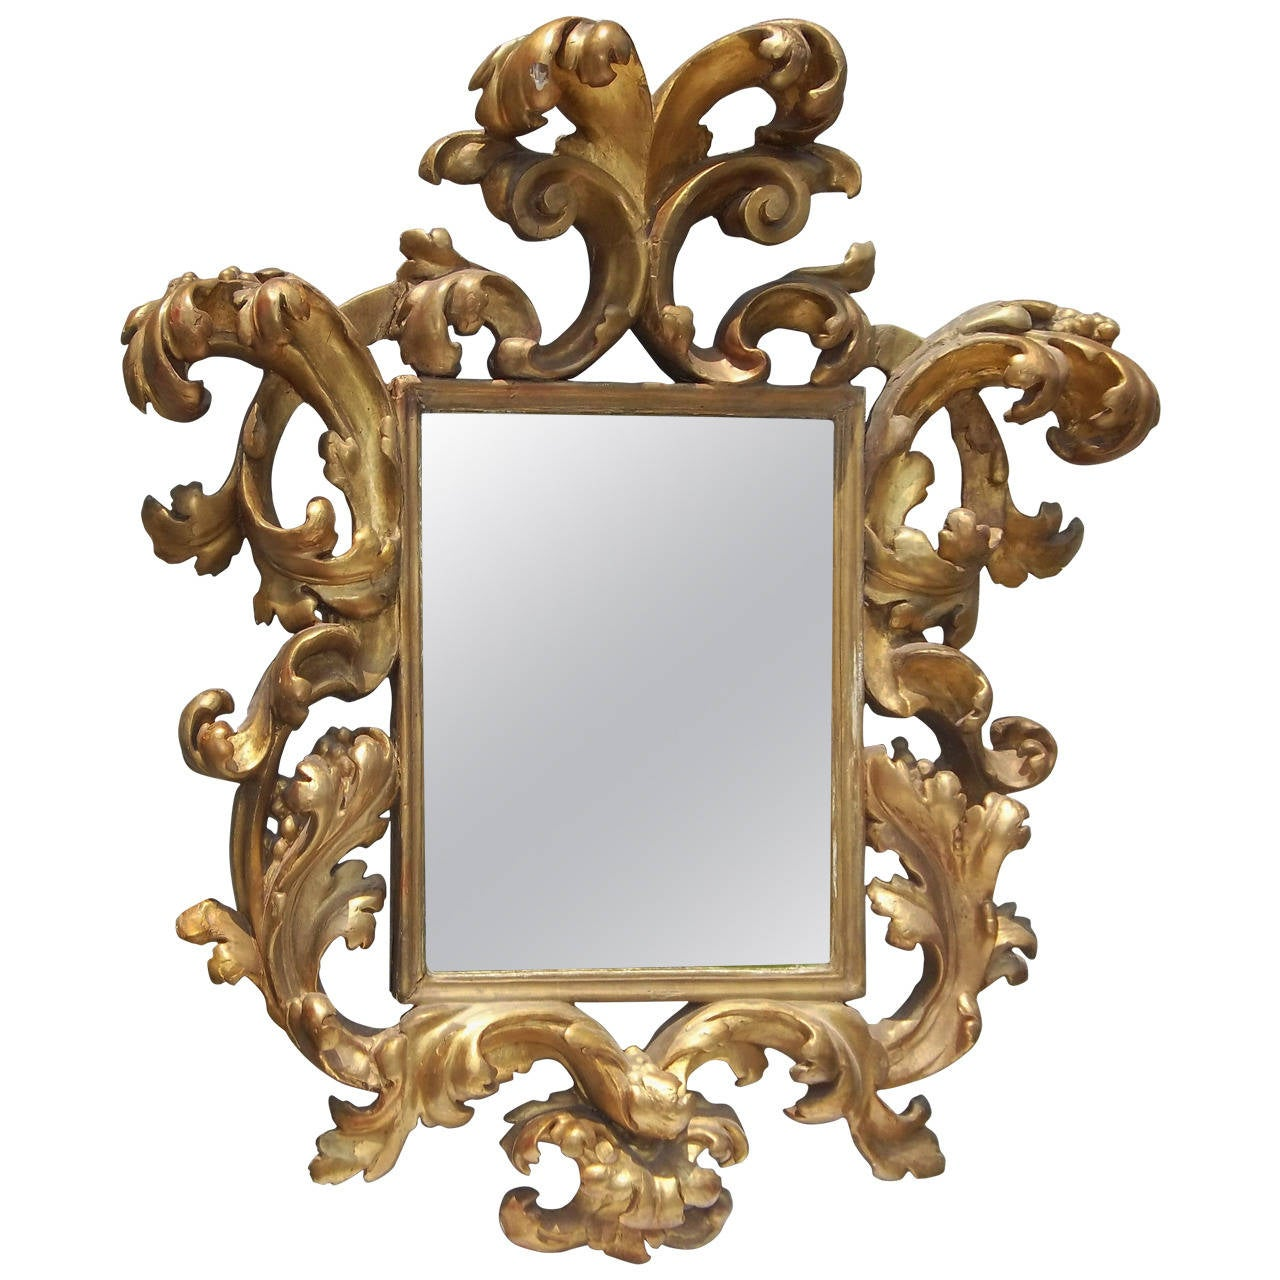 Carved giltwood italian baroque or rococo style mirror at for Floor mirror italian baroque rococo style